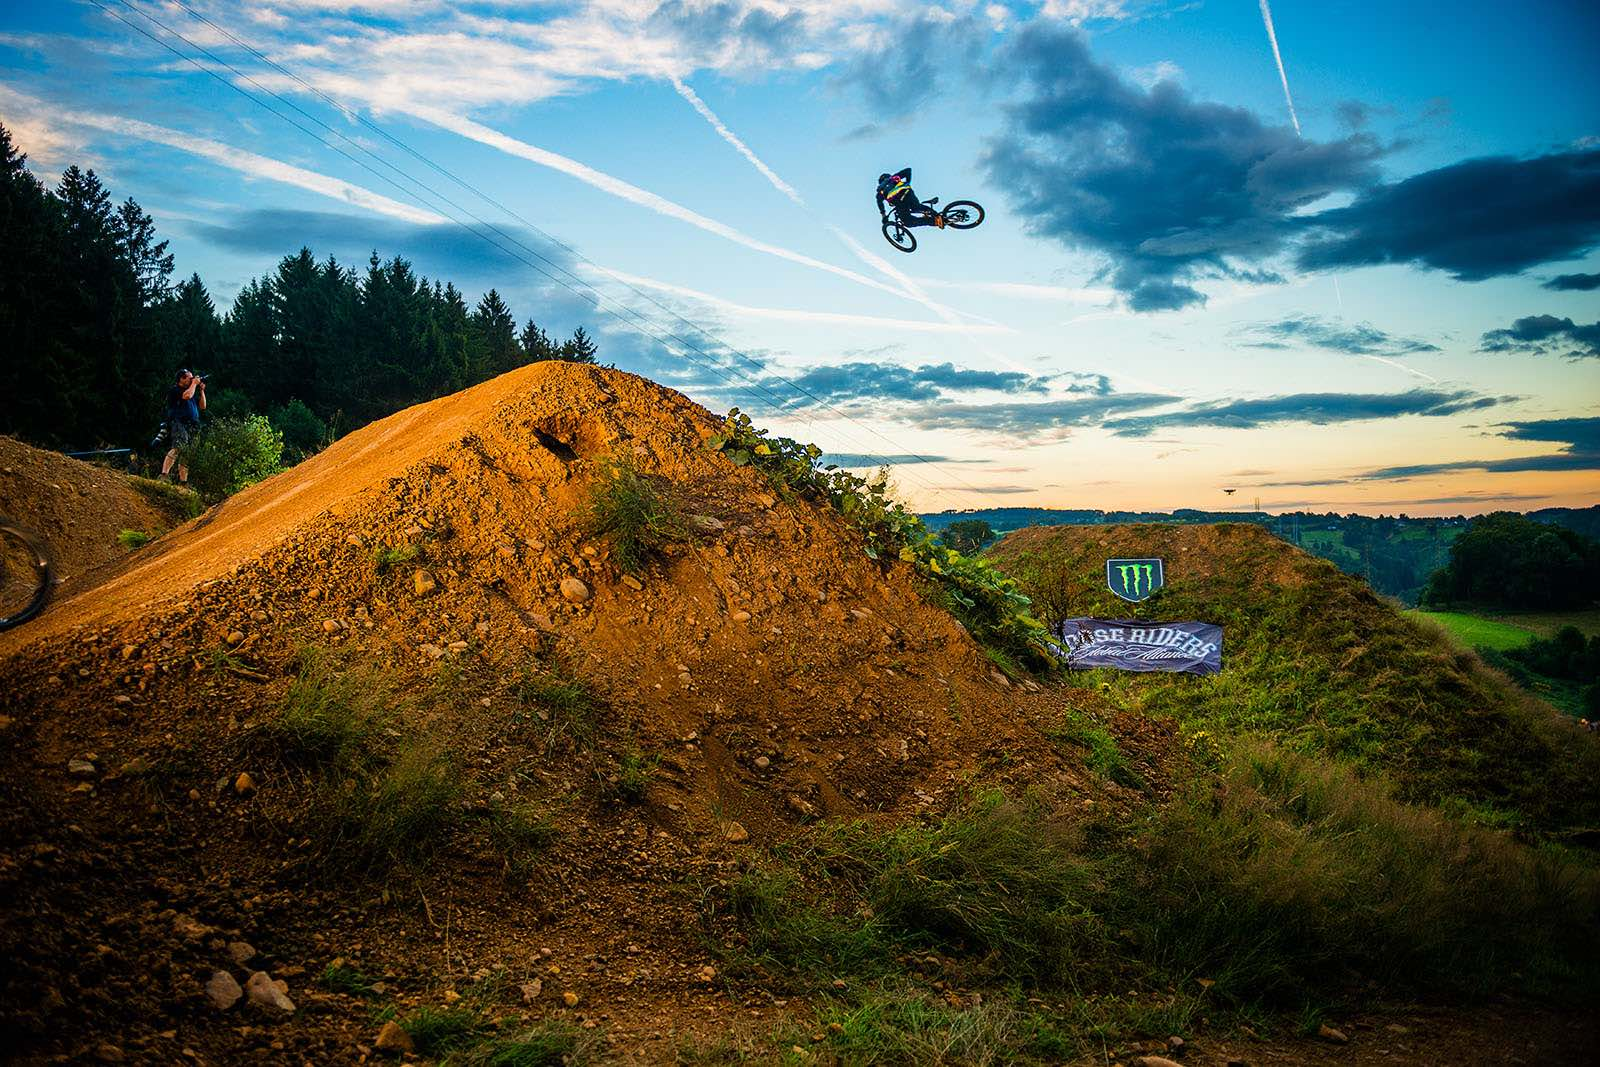 Nico Vink riding he Loosefest freeride MTB course